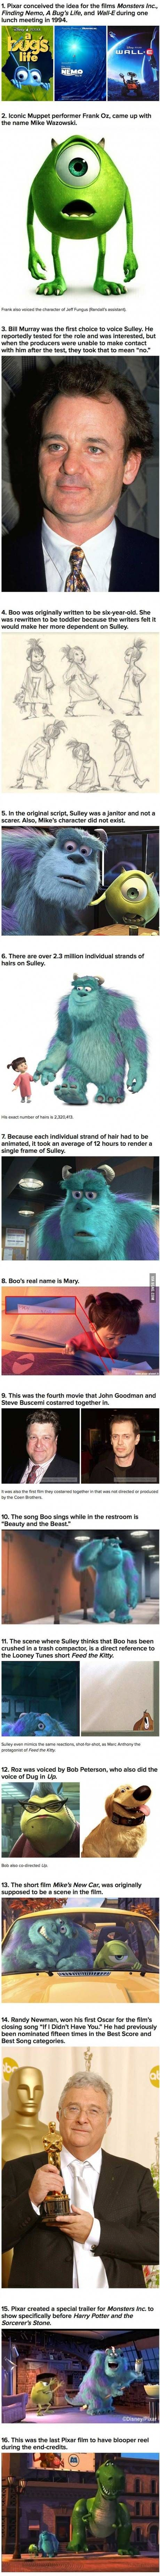 16 Monsters Inc. facts Bring back the blooper reel tradition, Pixar! :)